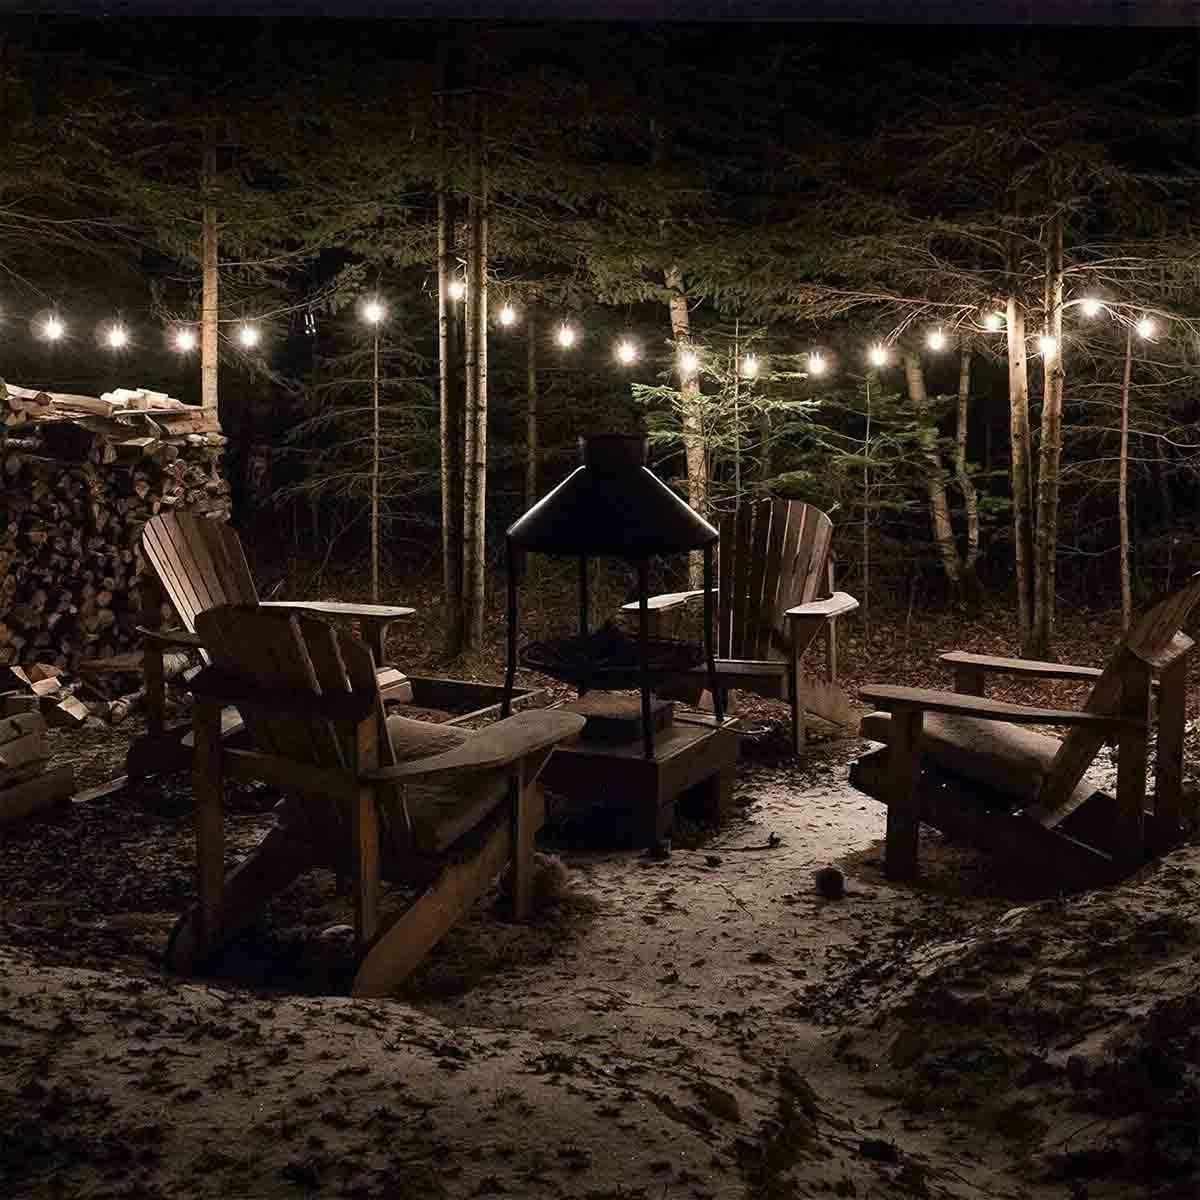 23FT 50 String Lights Waterproof Outdoor Party